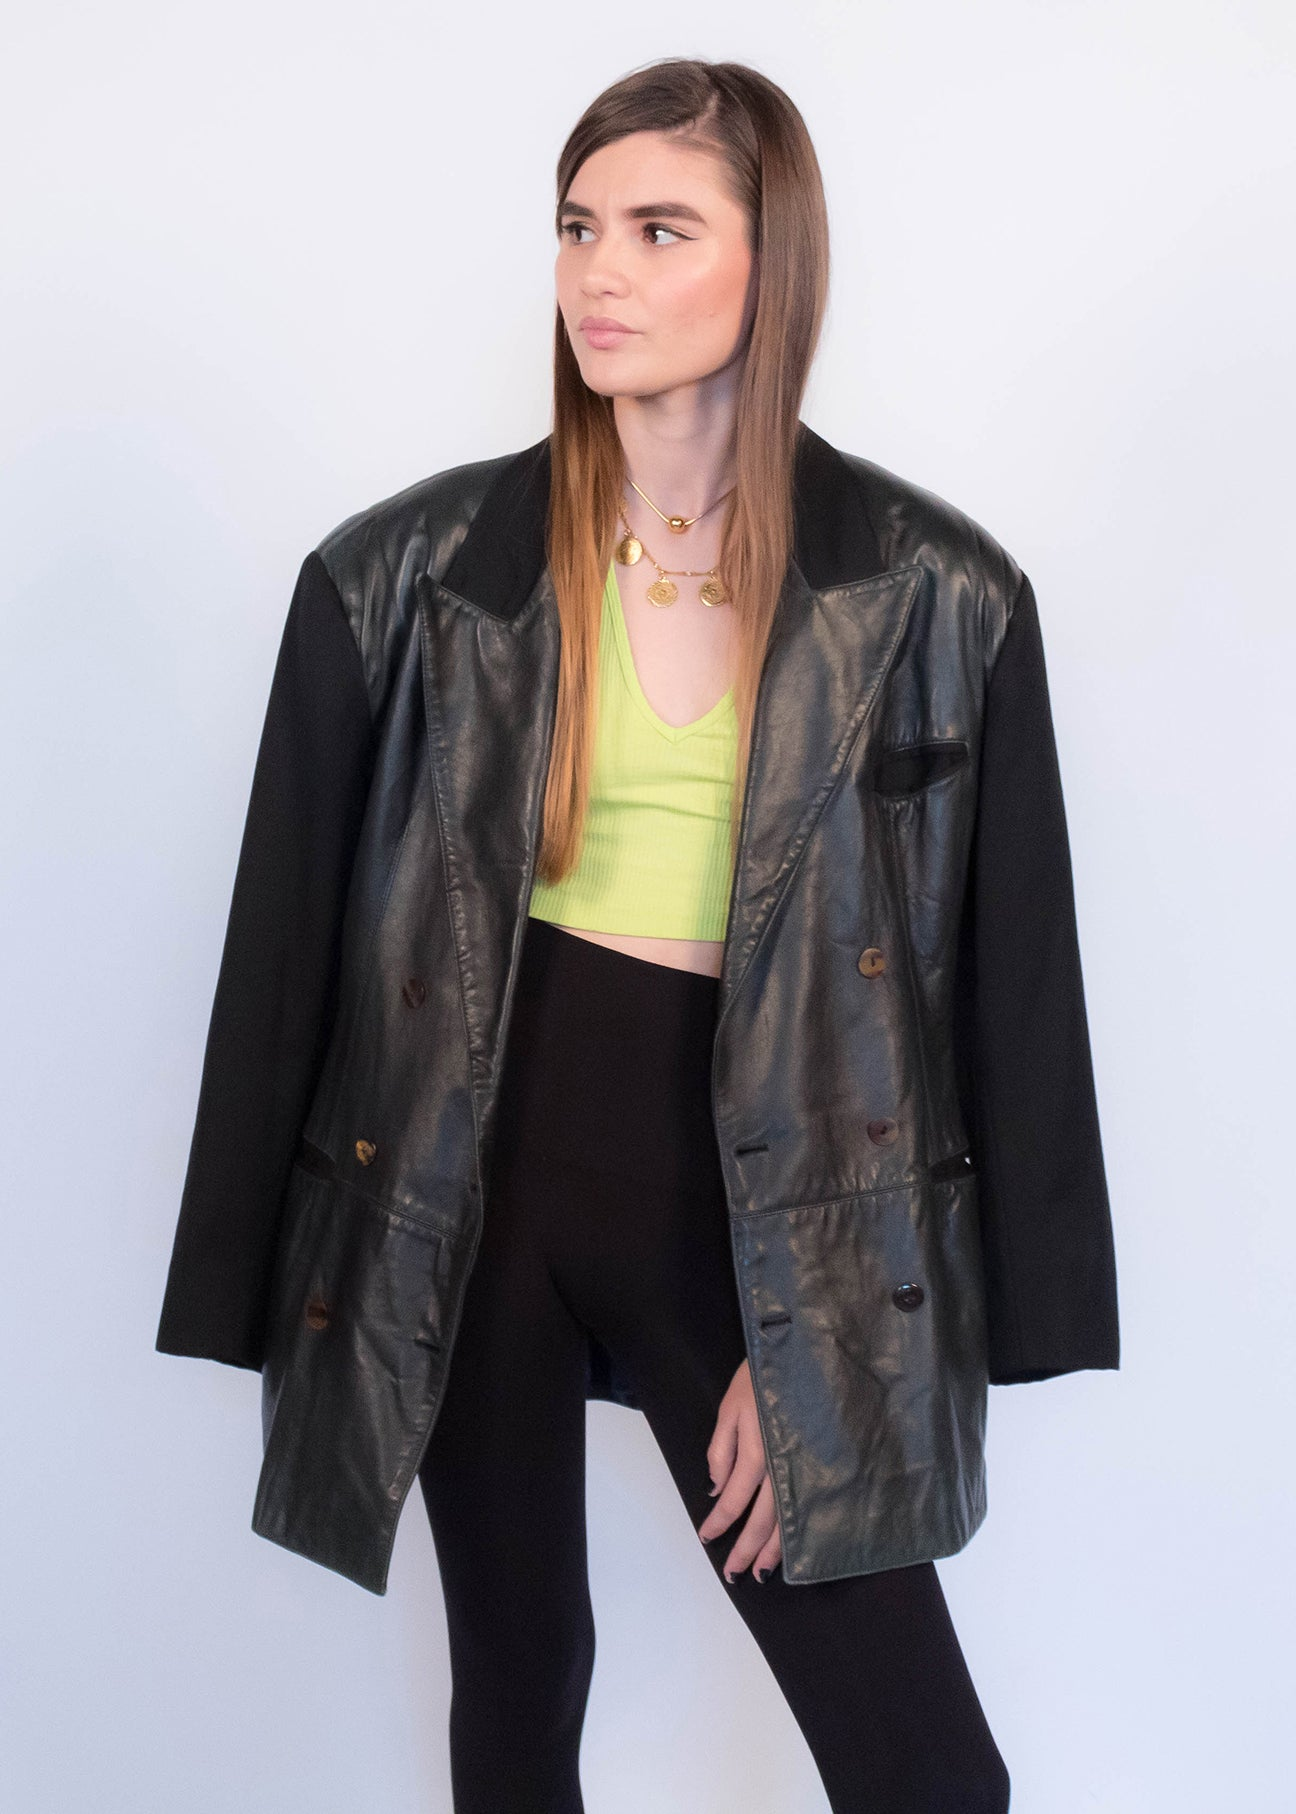 80s Jean Paul Gaultier Leather Jacket